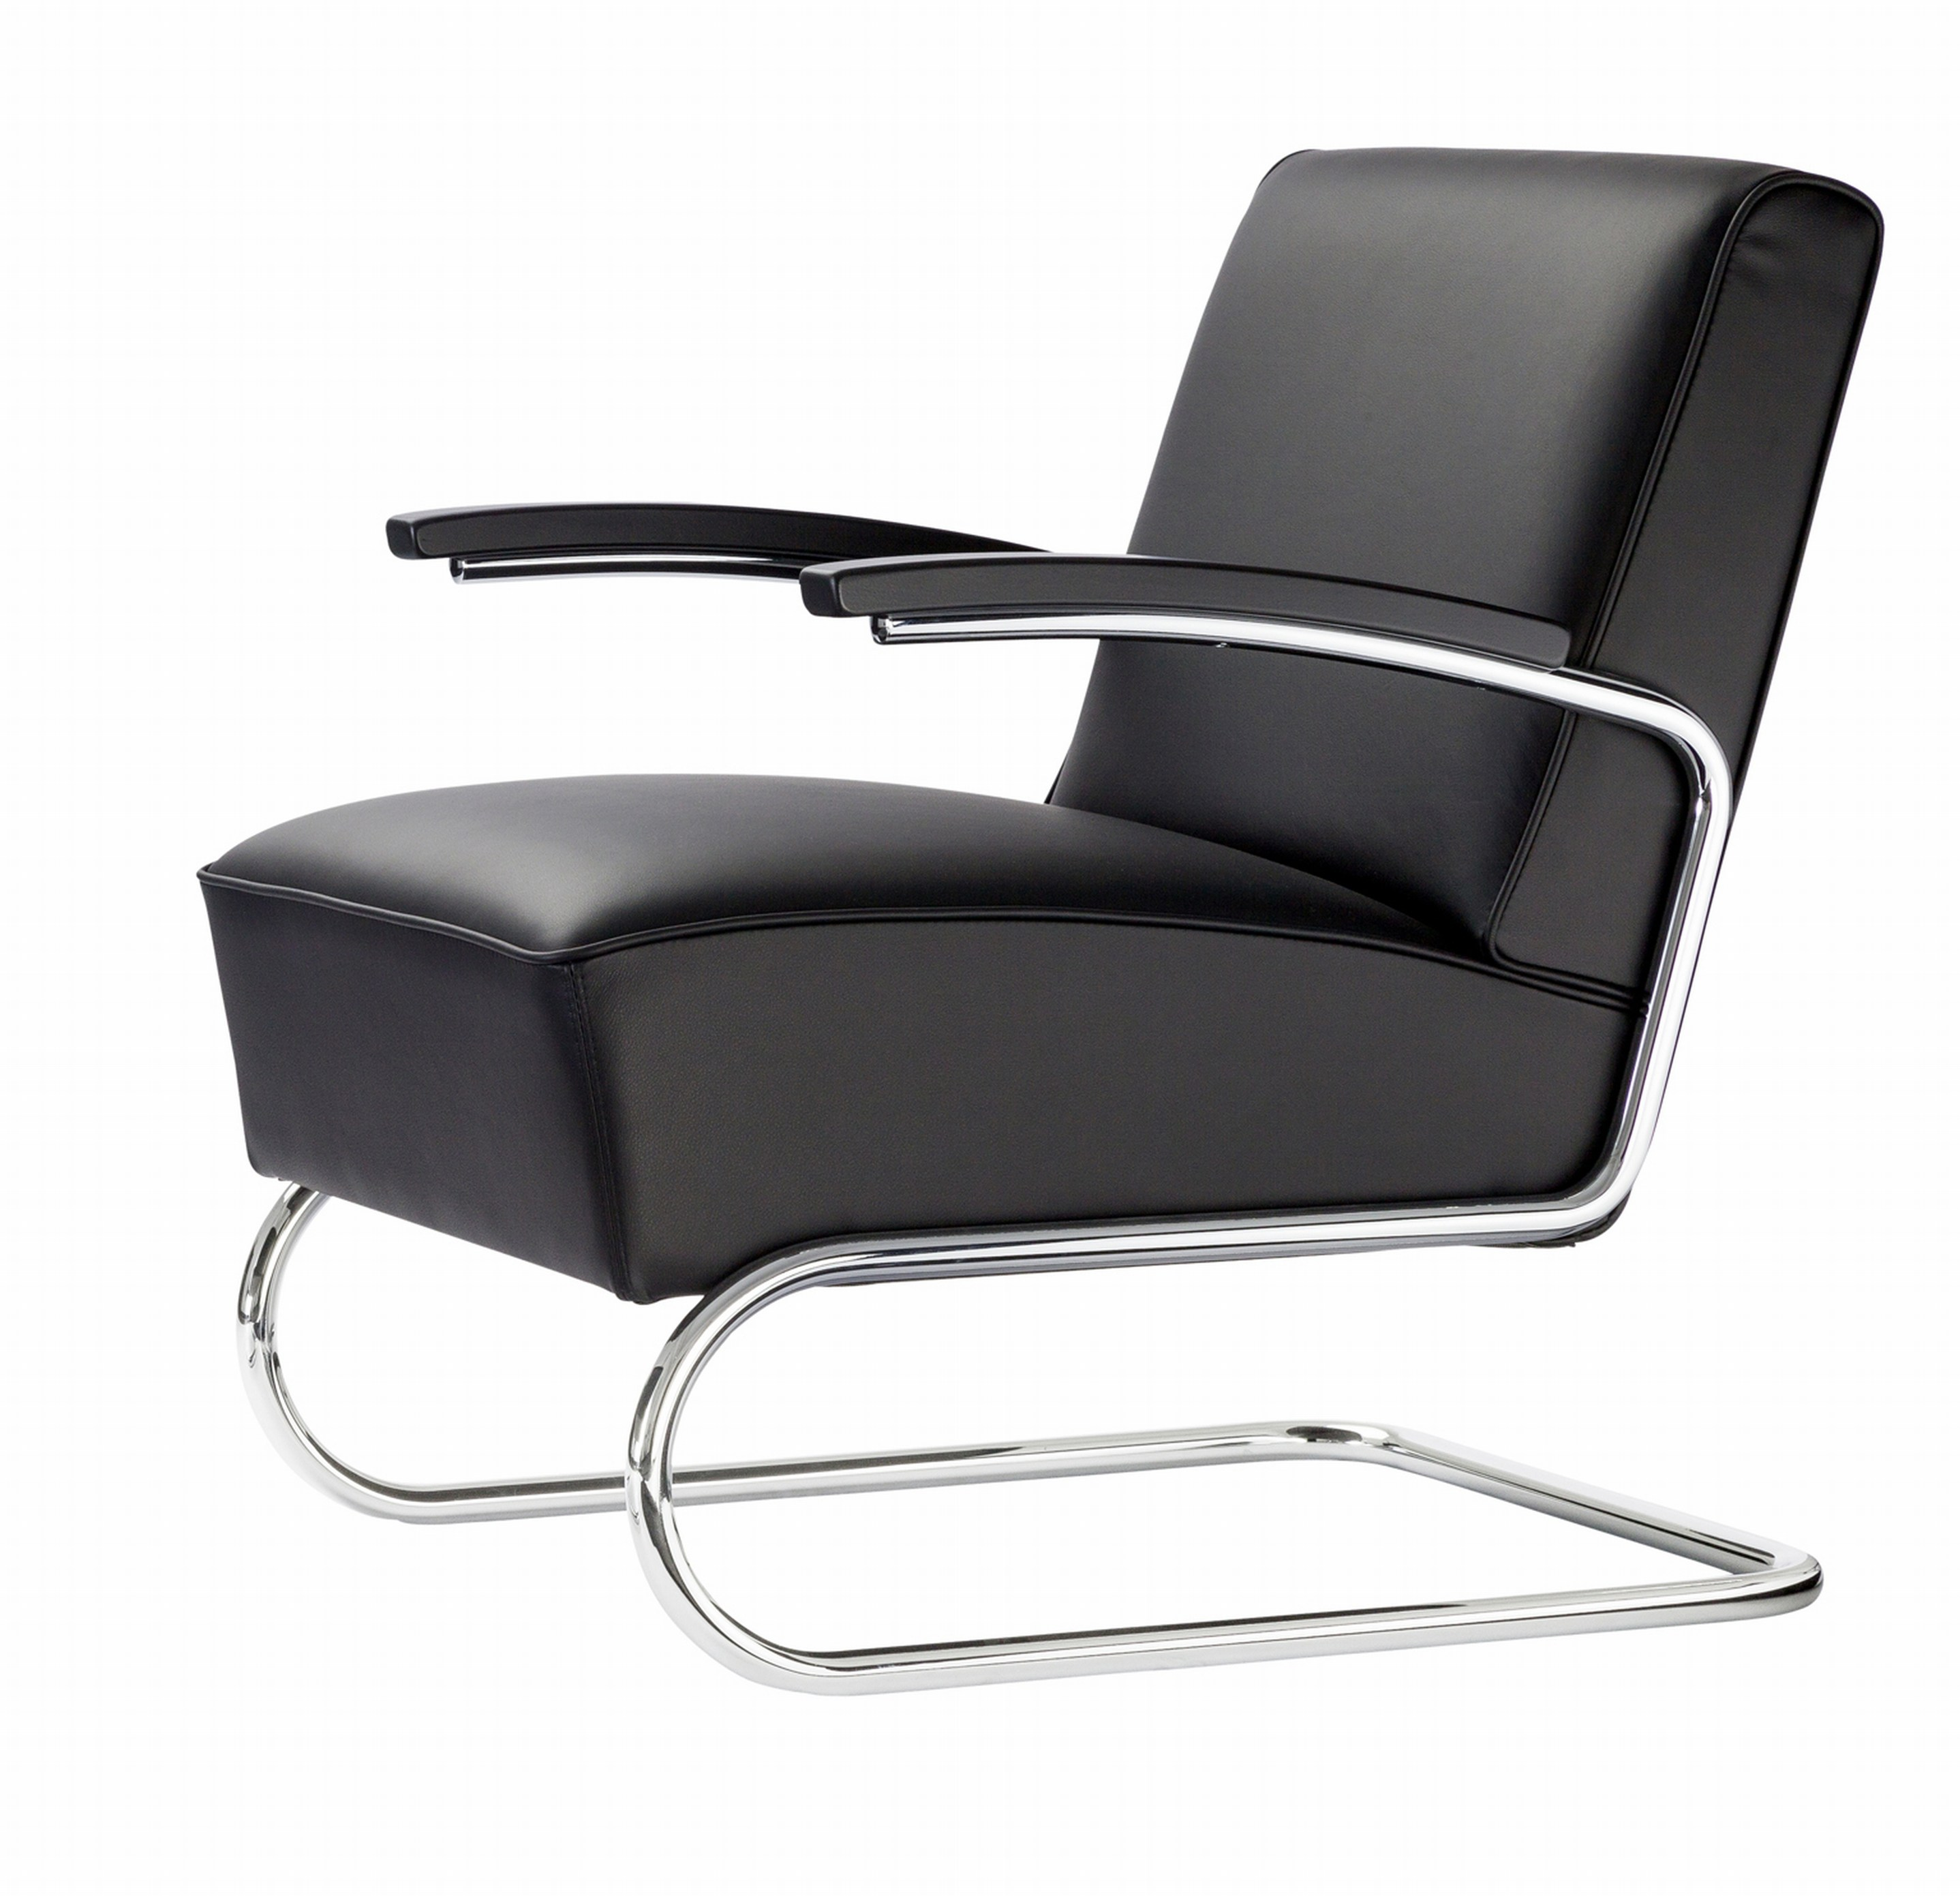 s411 cantilever armchair by thonet. Black Bedroom Furniture Sets. Home Design Ideas